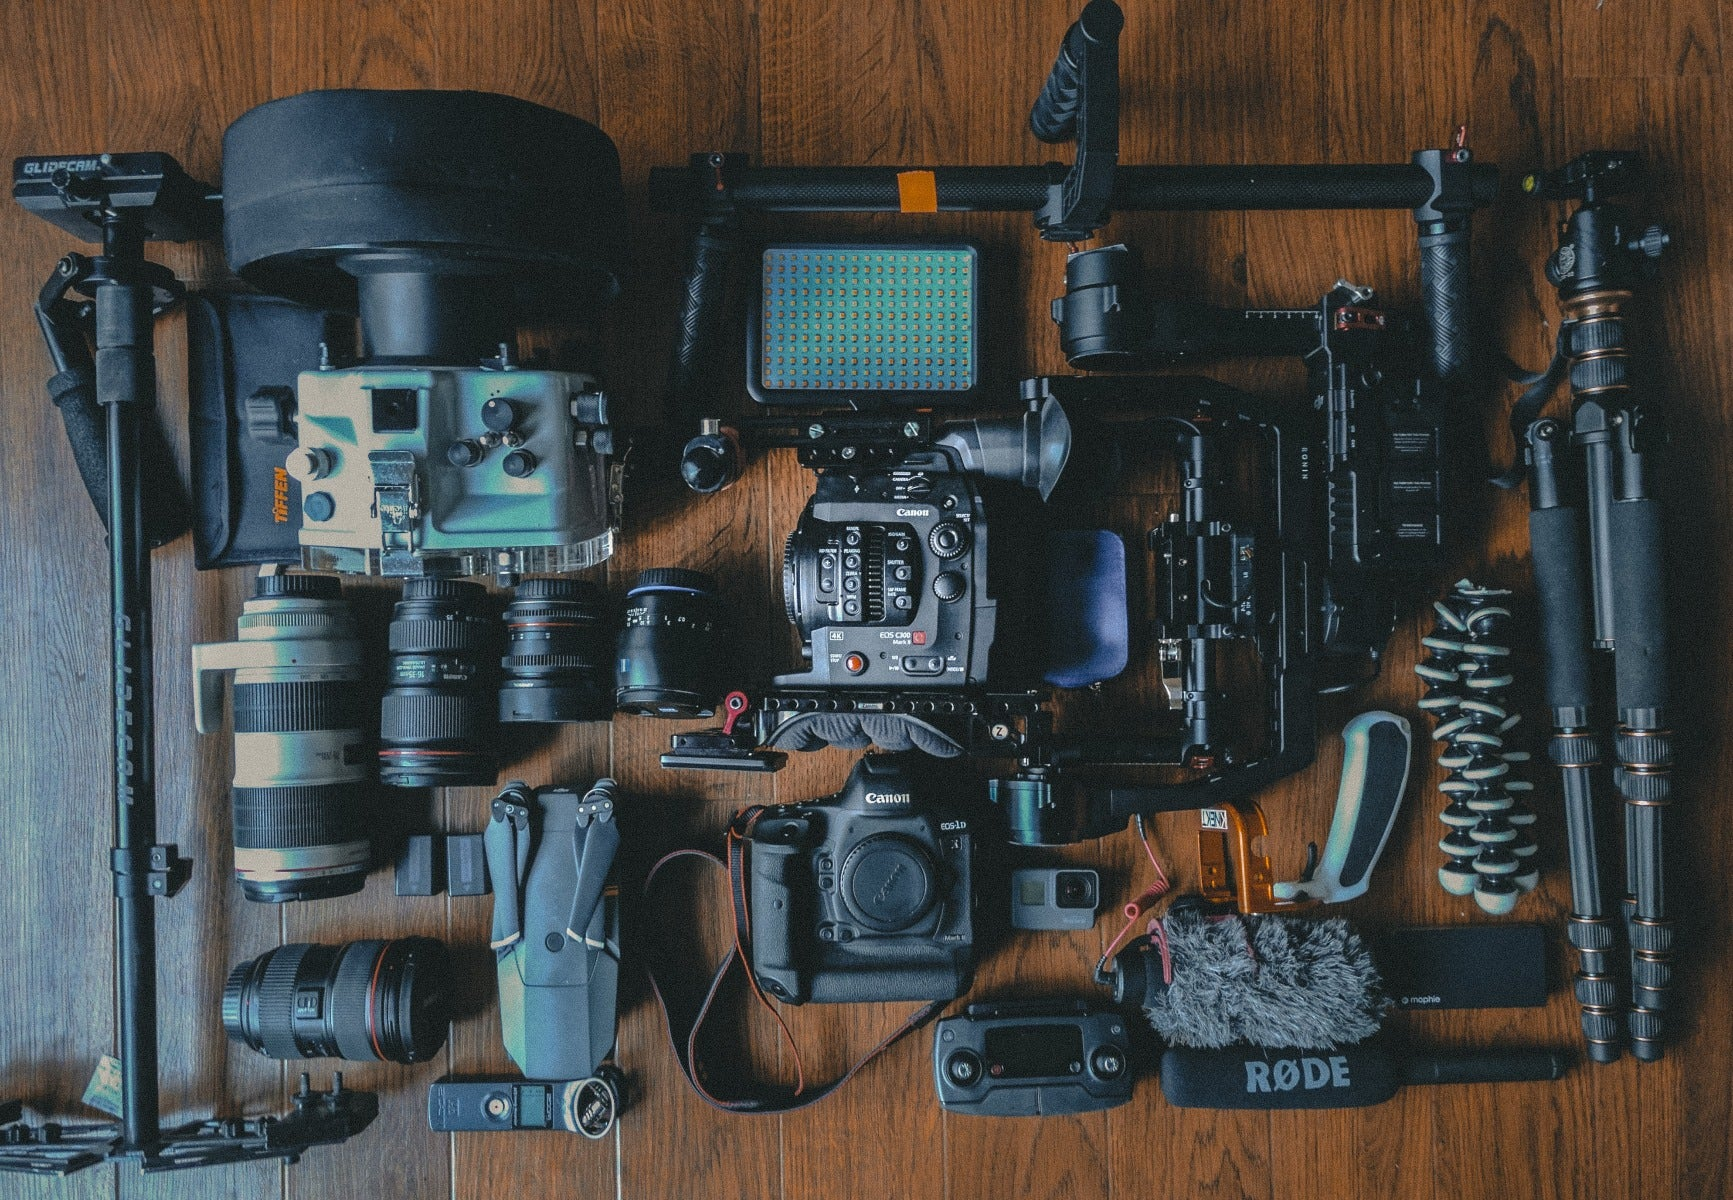 Too much camera gear for a trip!